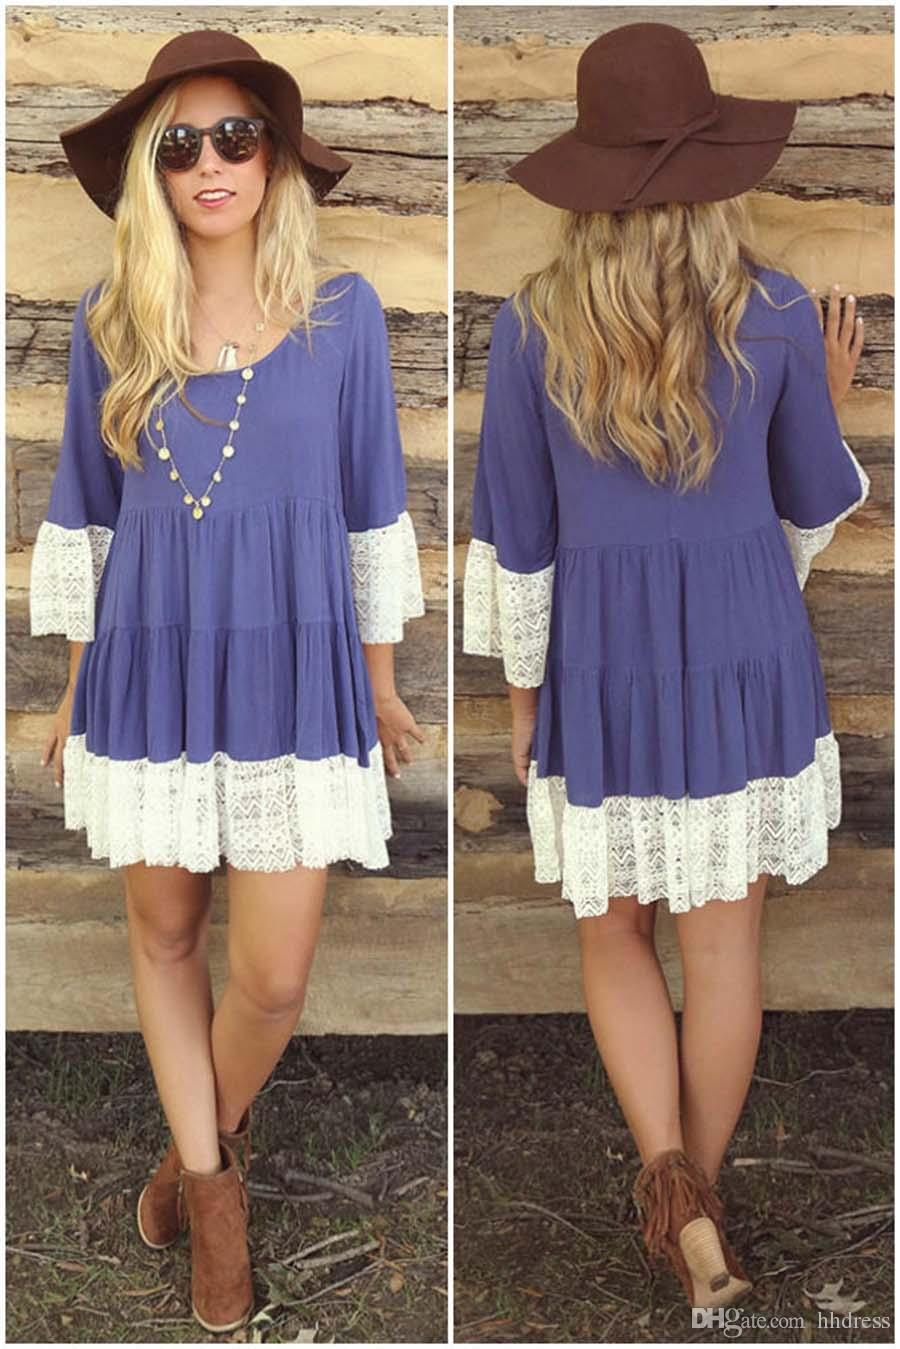 81373306b396 High Quality Short Lace Casual Dress For Women 3 4 Sleeve Summer Beach Maxi Dress  Ladies T Shirts Blouse Casual T Shirt Dresses Sundresses Shift Dress From  ...